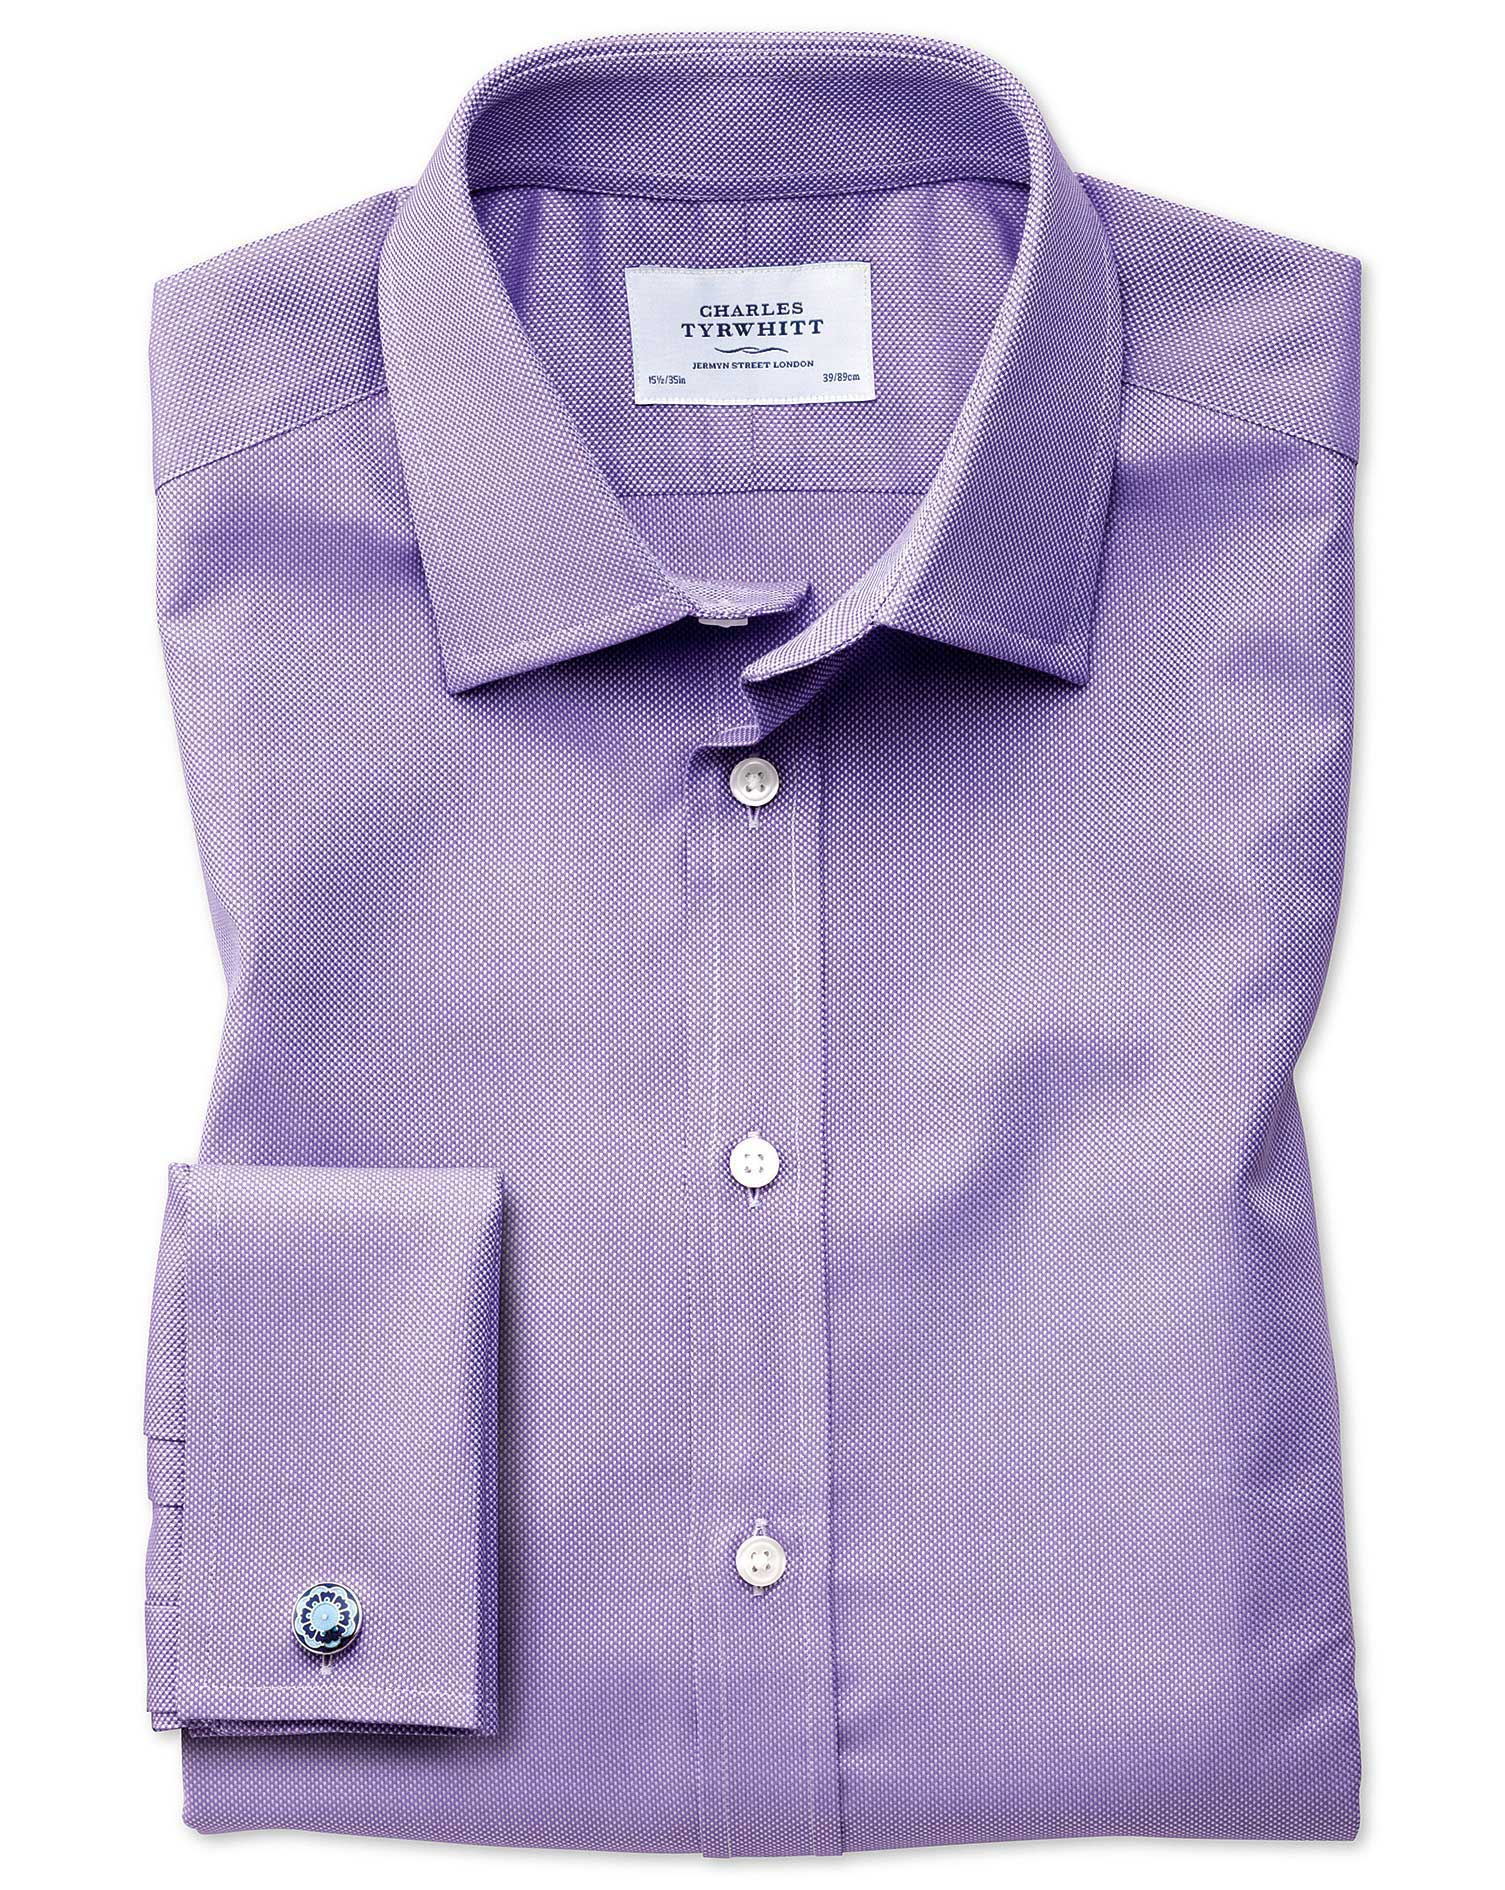 Classic Fit Egyptian Cotton Royal Oxford Lilac Formal Shirt Single Cuff Size 16/34 by Charles Tyrwhi